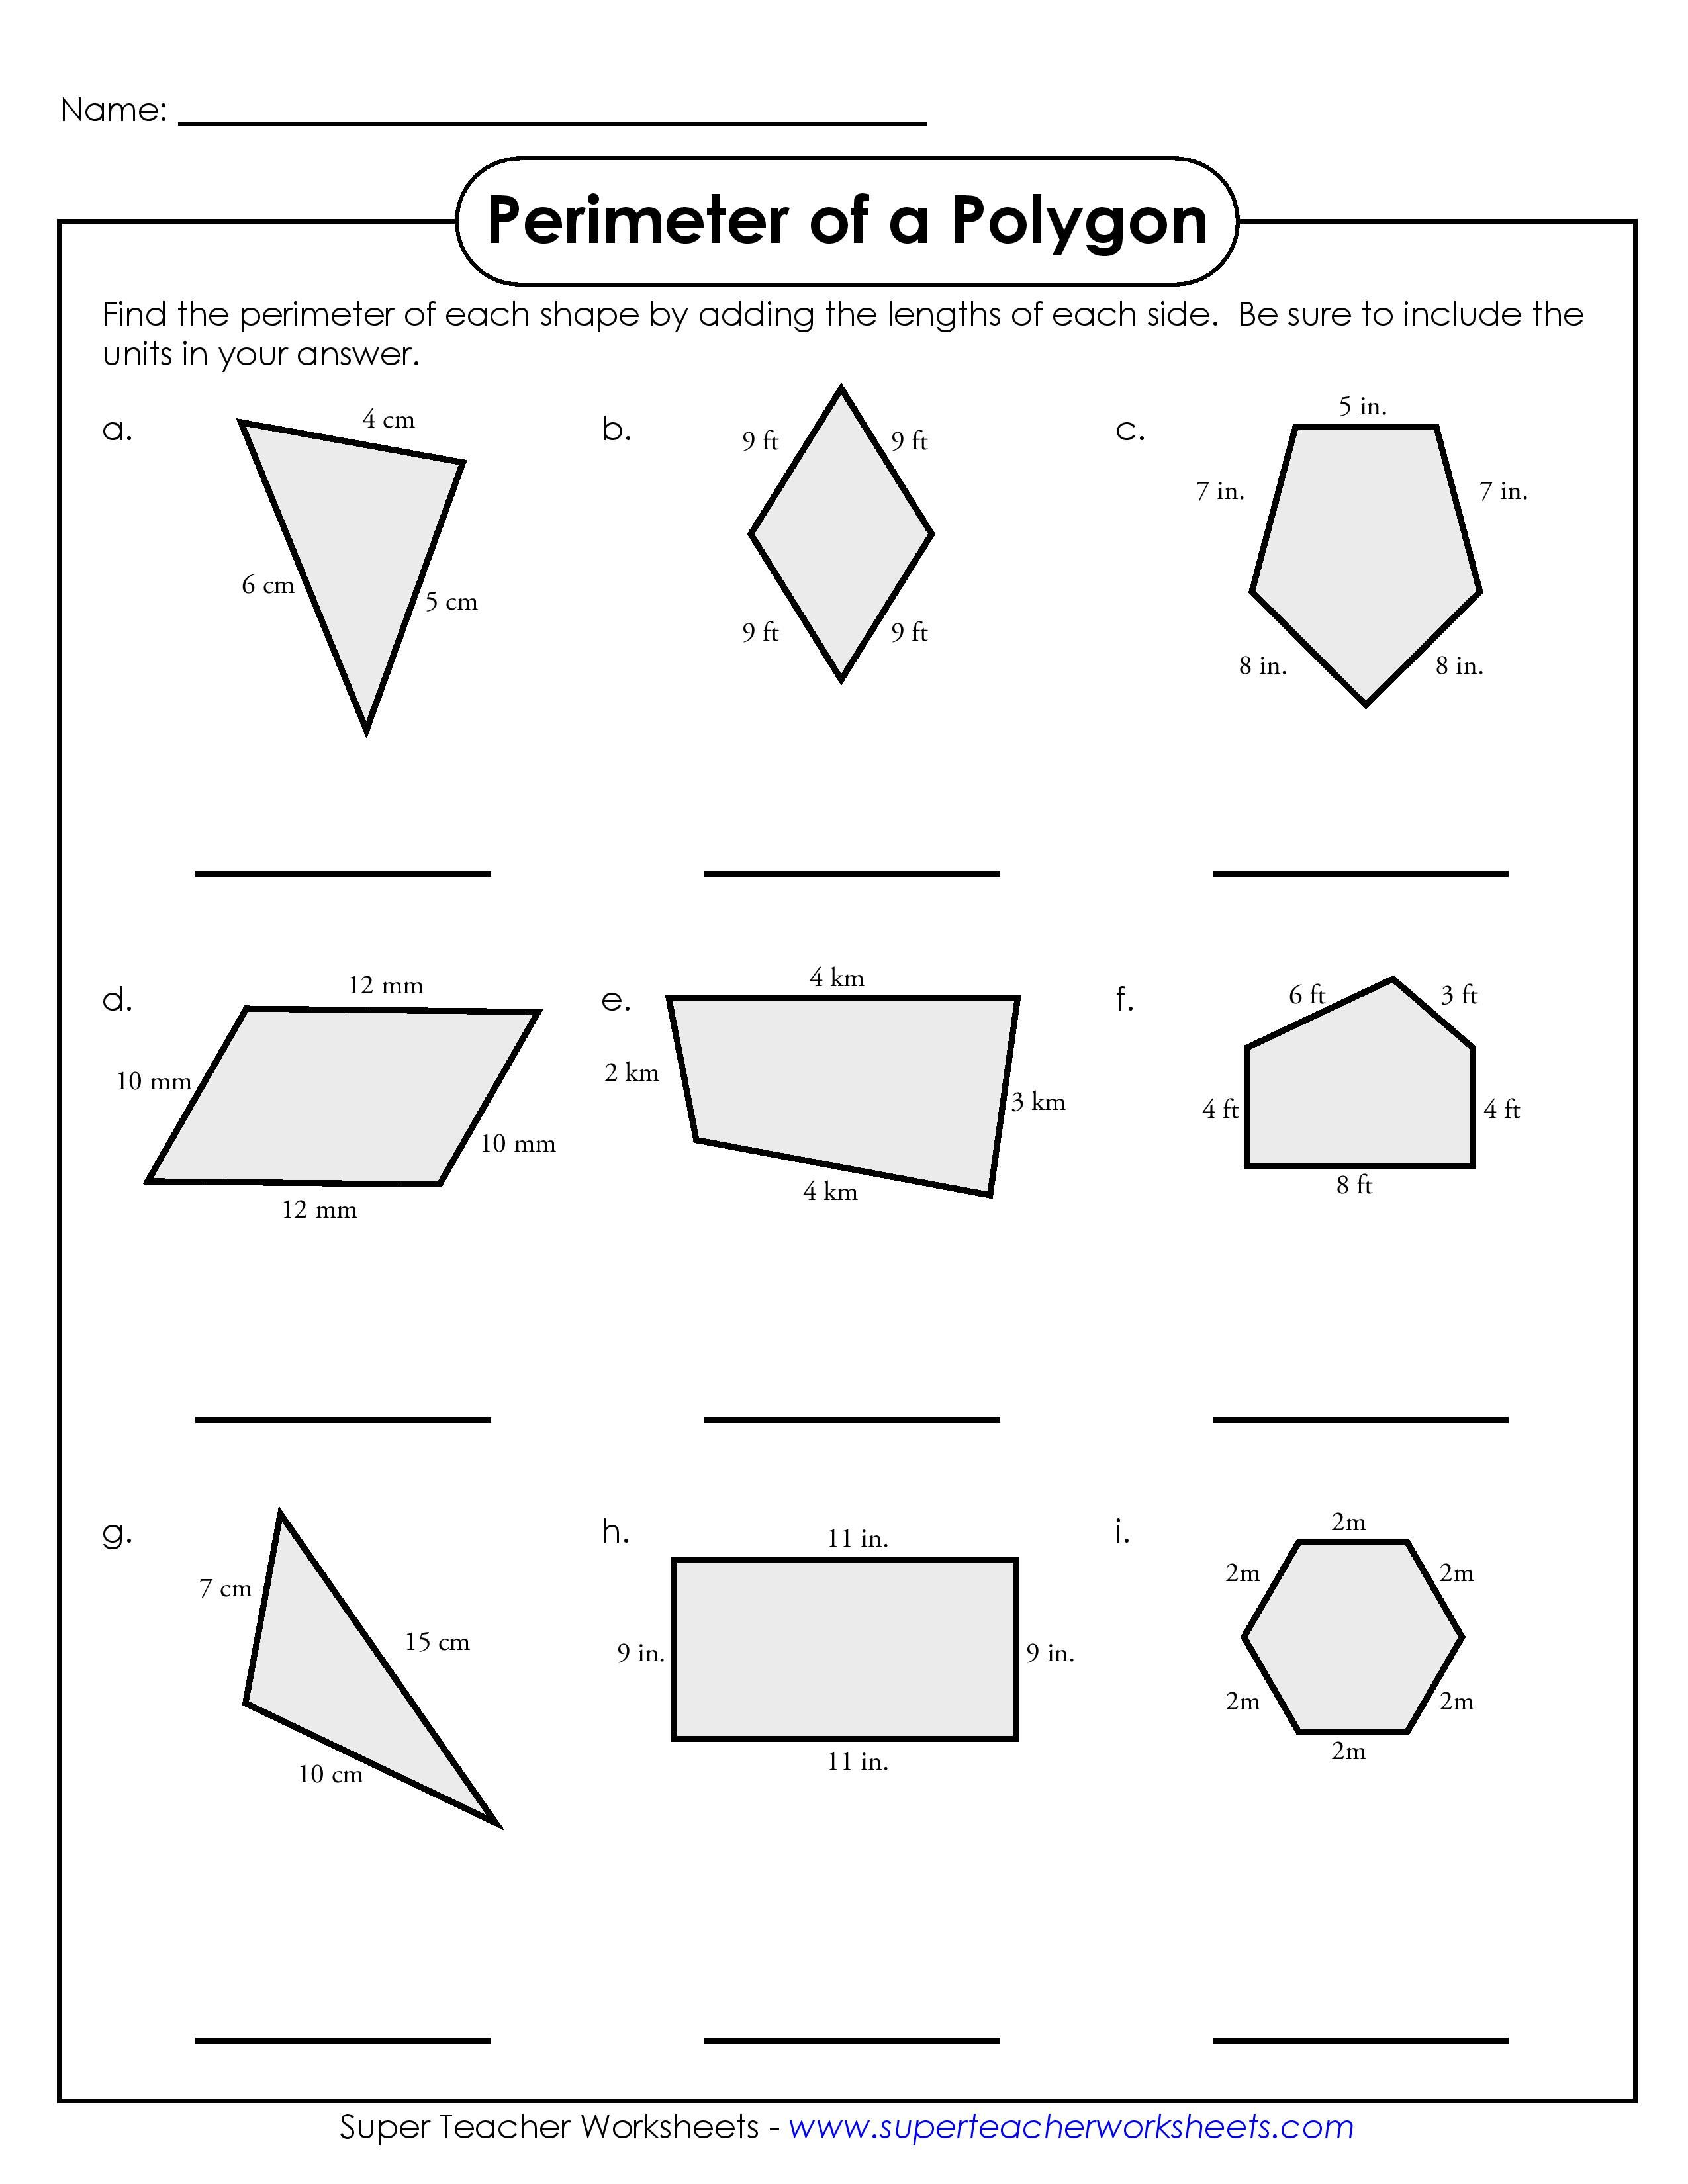 Best 10 Area And Perimeter Worksheet You Calendars Https Www Youcalendars Com Are Perimeter Worksheets Area And Perimeter Worksheets Area And Perimeter